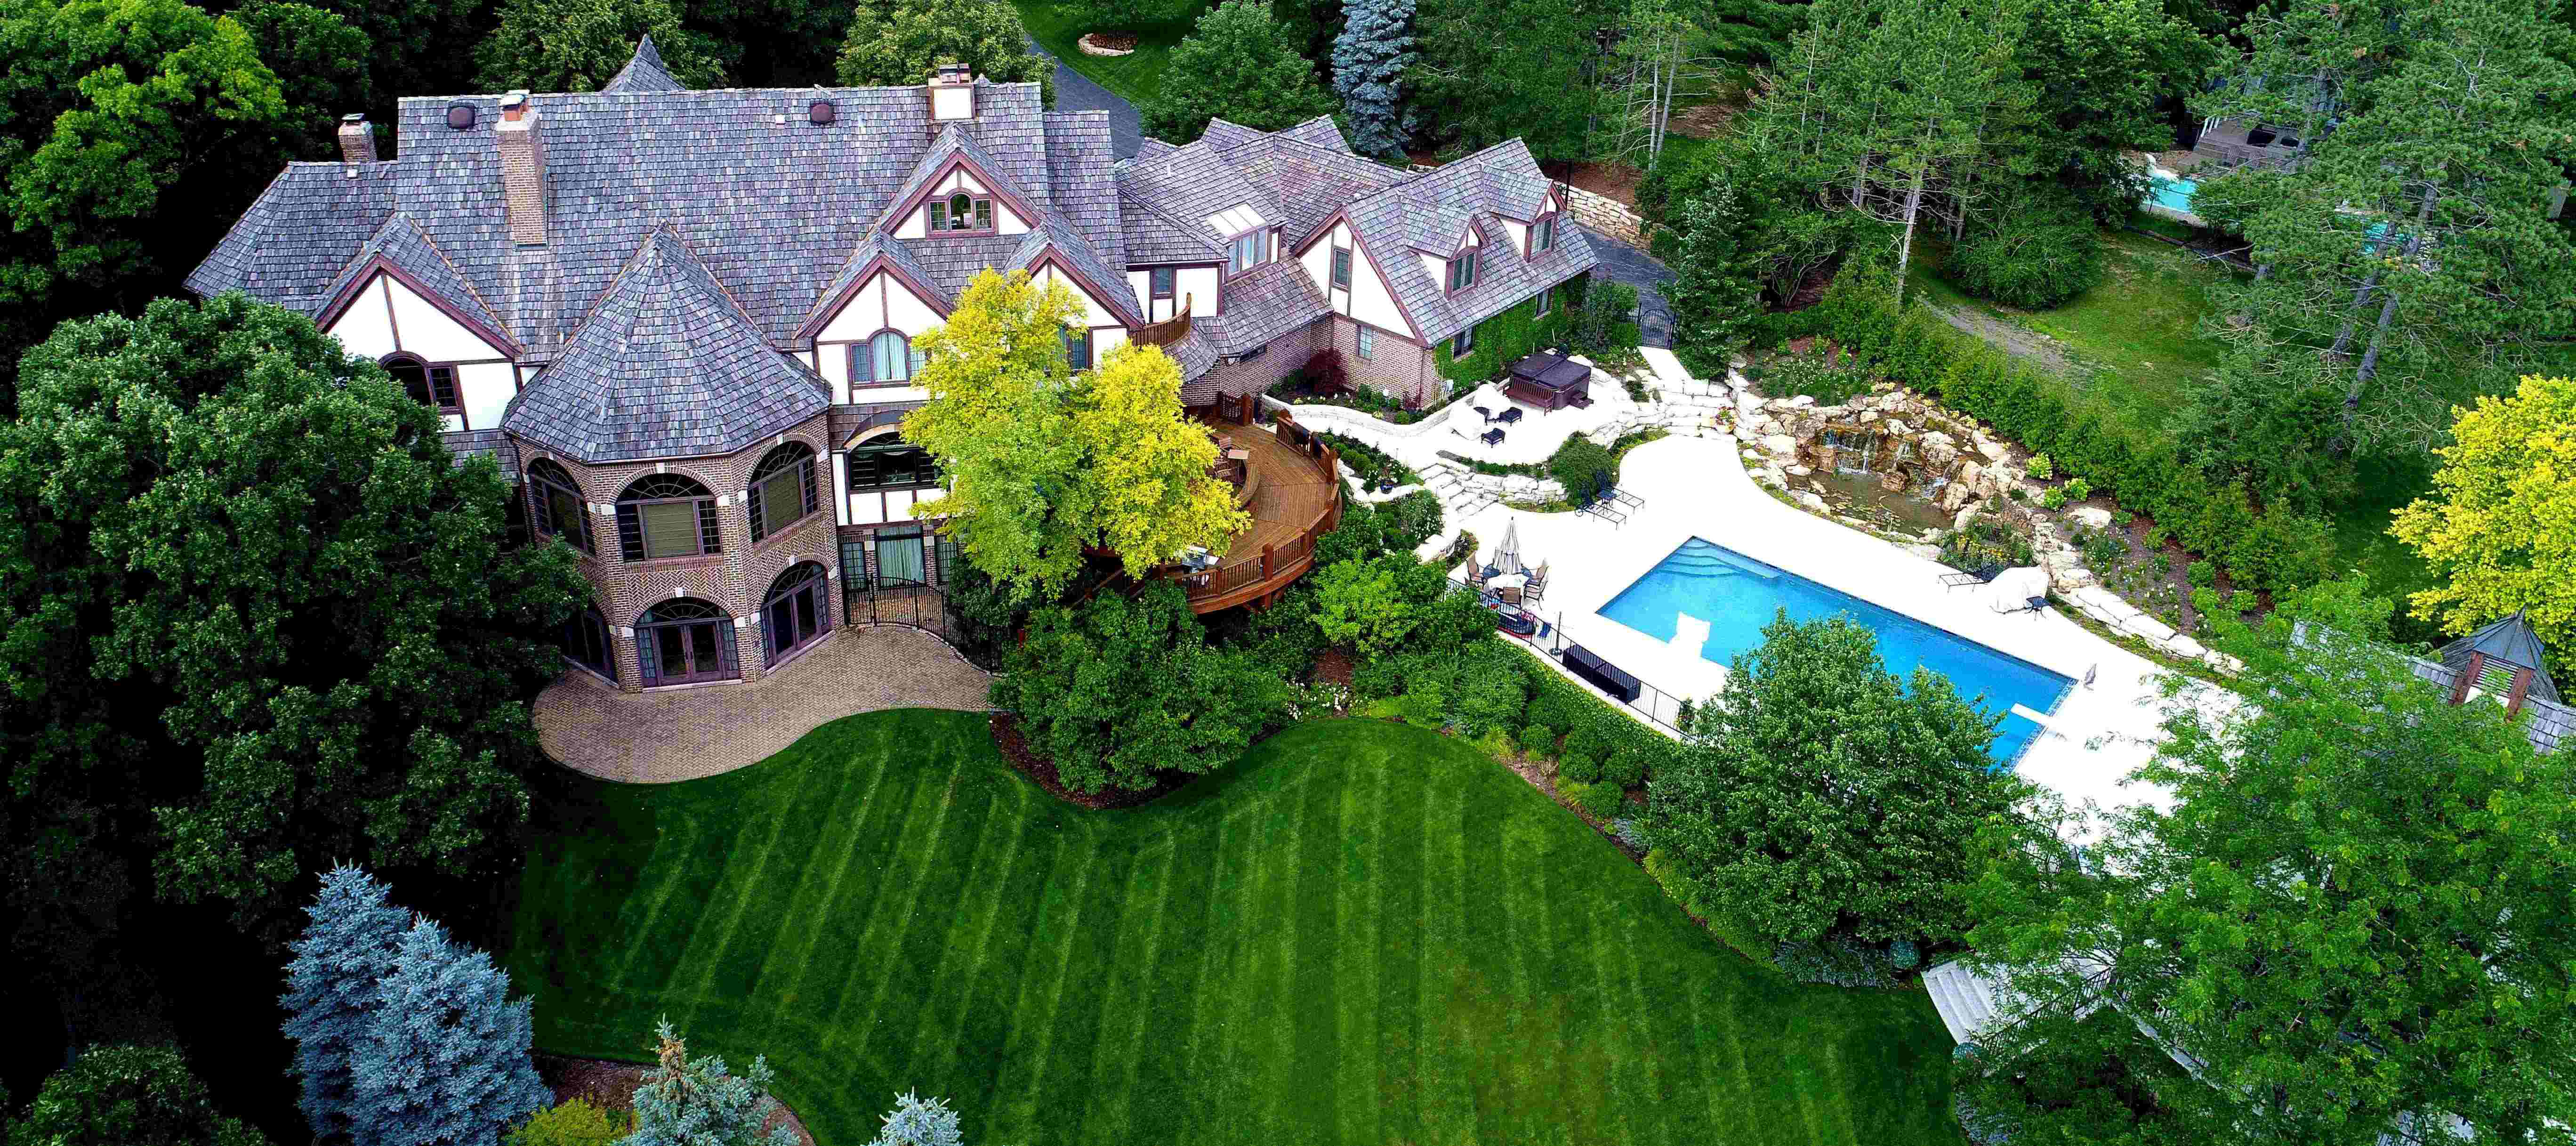 mansion with landscaped lawn and pool